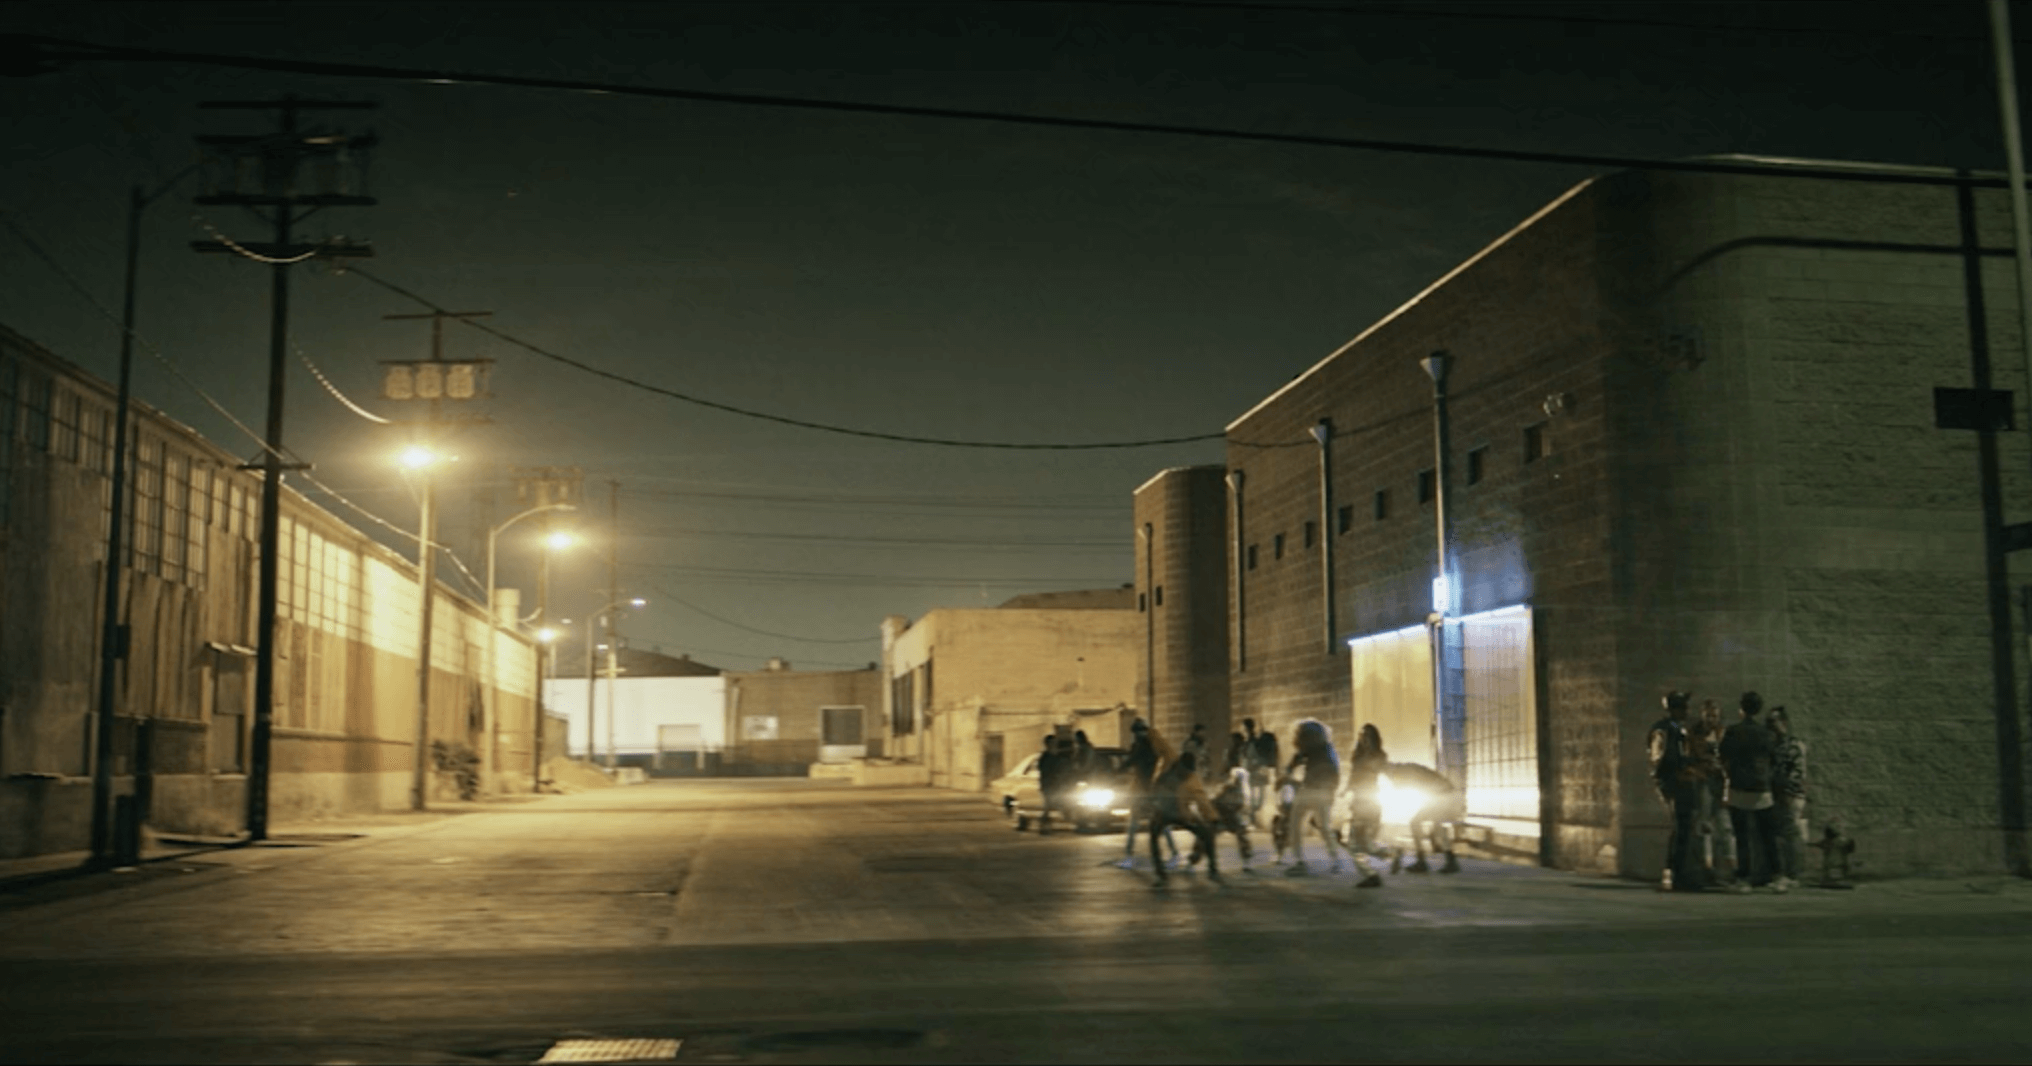 Film Dance for the BMW 3 series directed by Knut Burgdorf